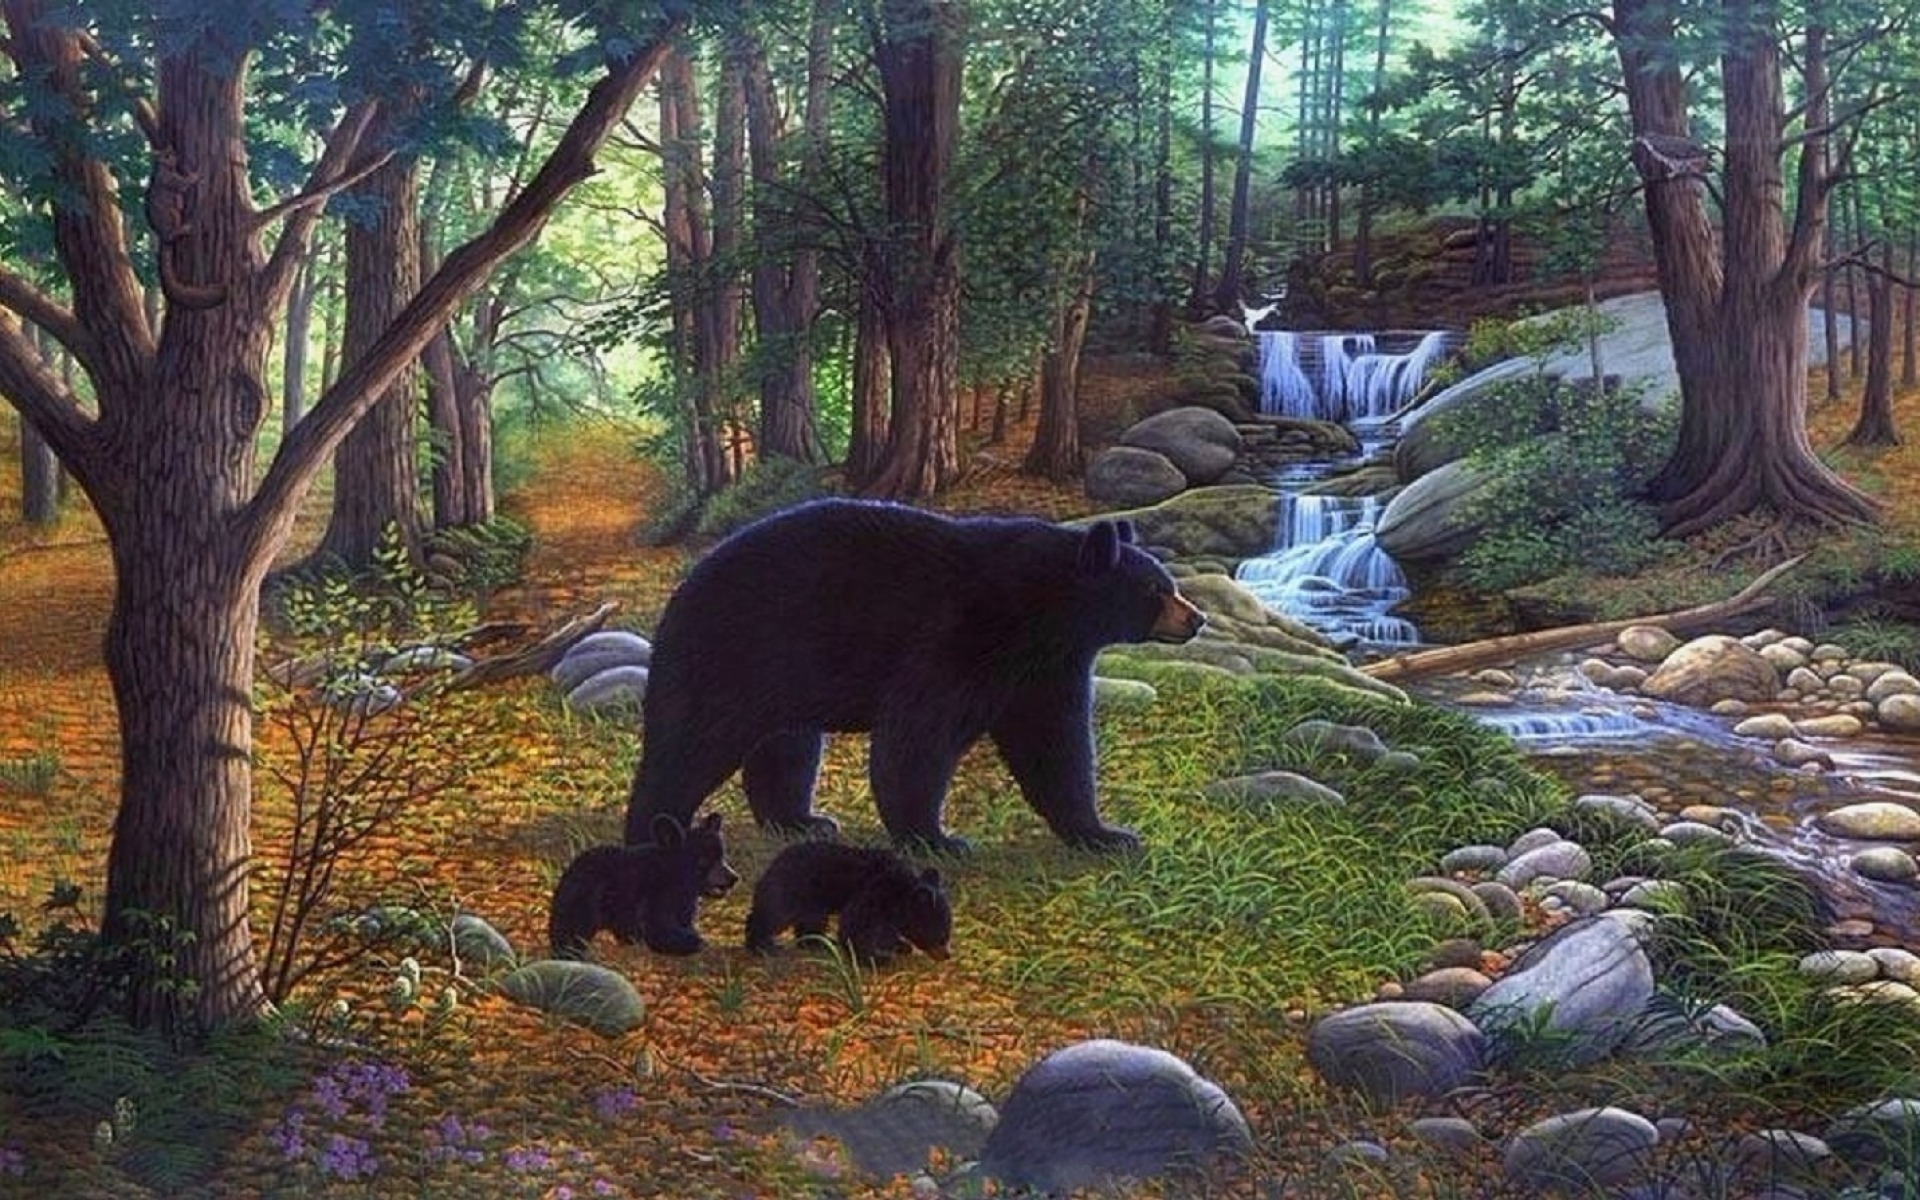 Free Wallpapers Of Cute Teddy Bears Forest Bears Waterfalls Creek Wallpapers Forest Bears